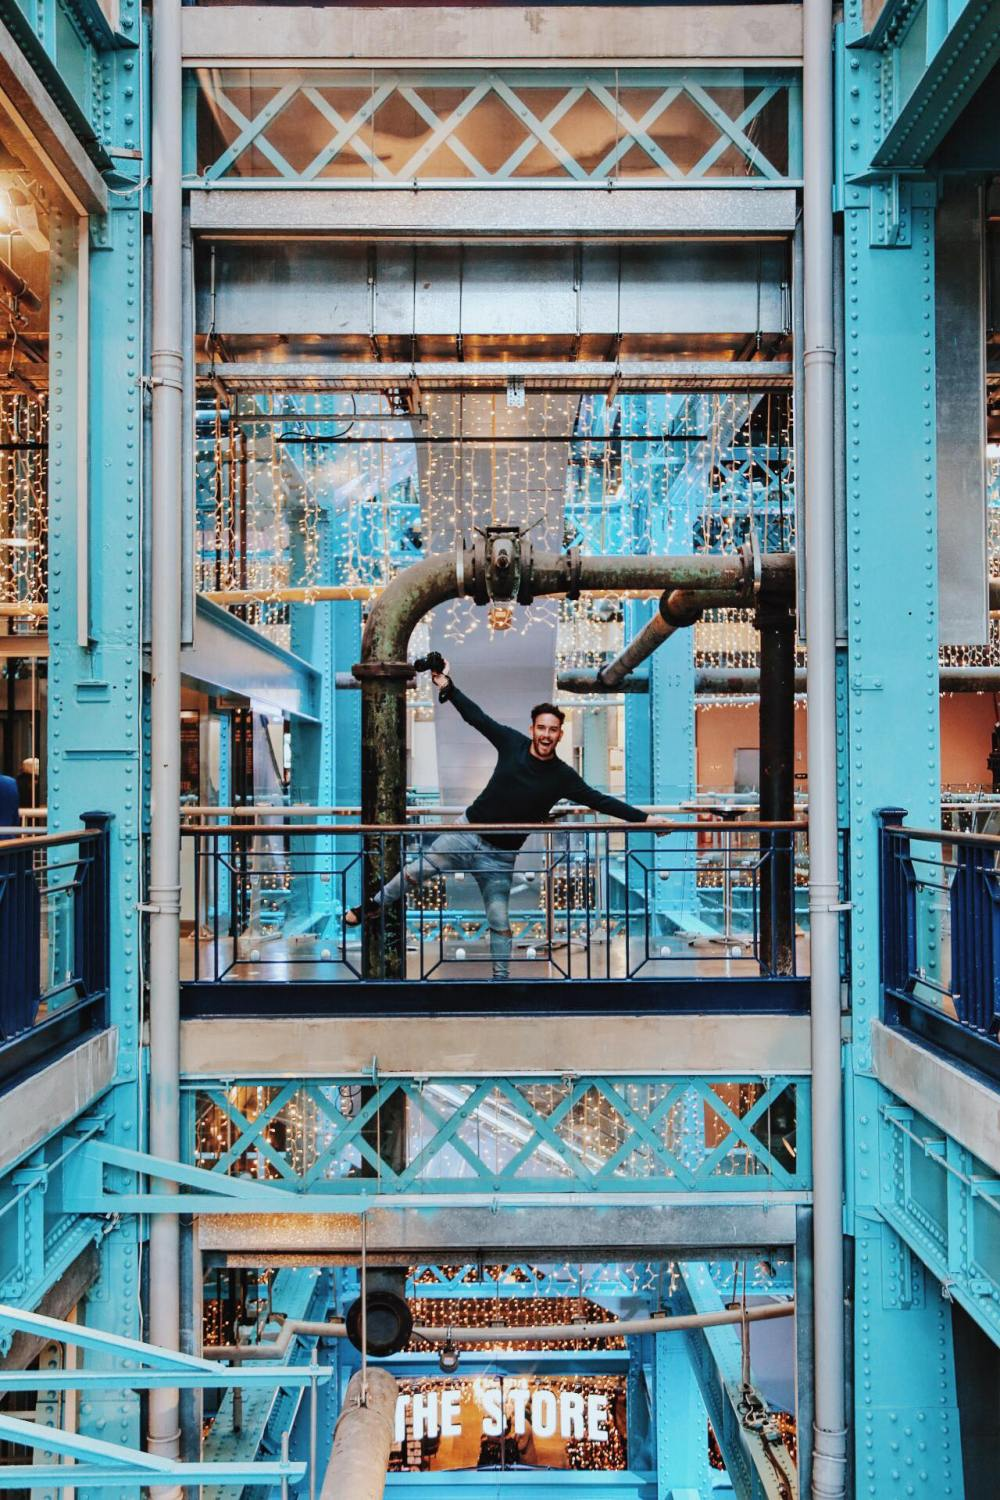 We're in Dublin, Ireland - Guinness Storehouse - Teeling Whiskey (2)